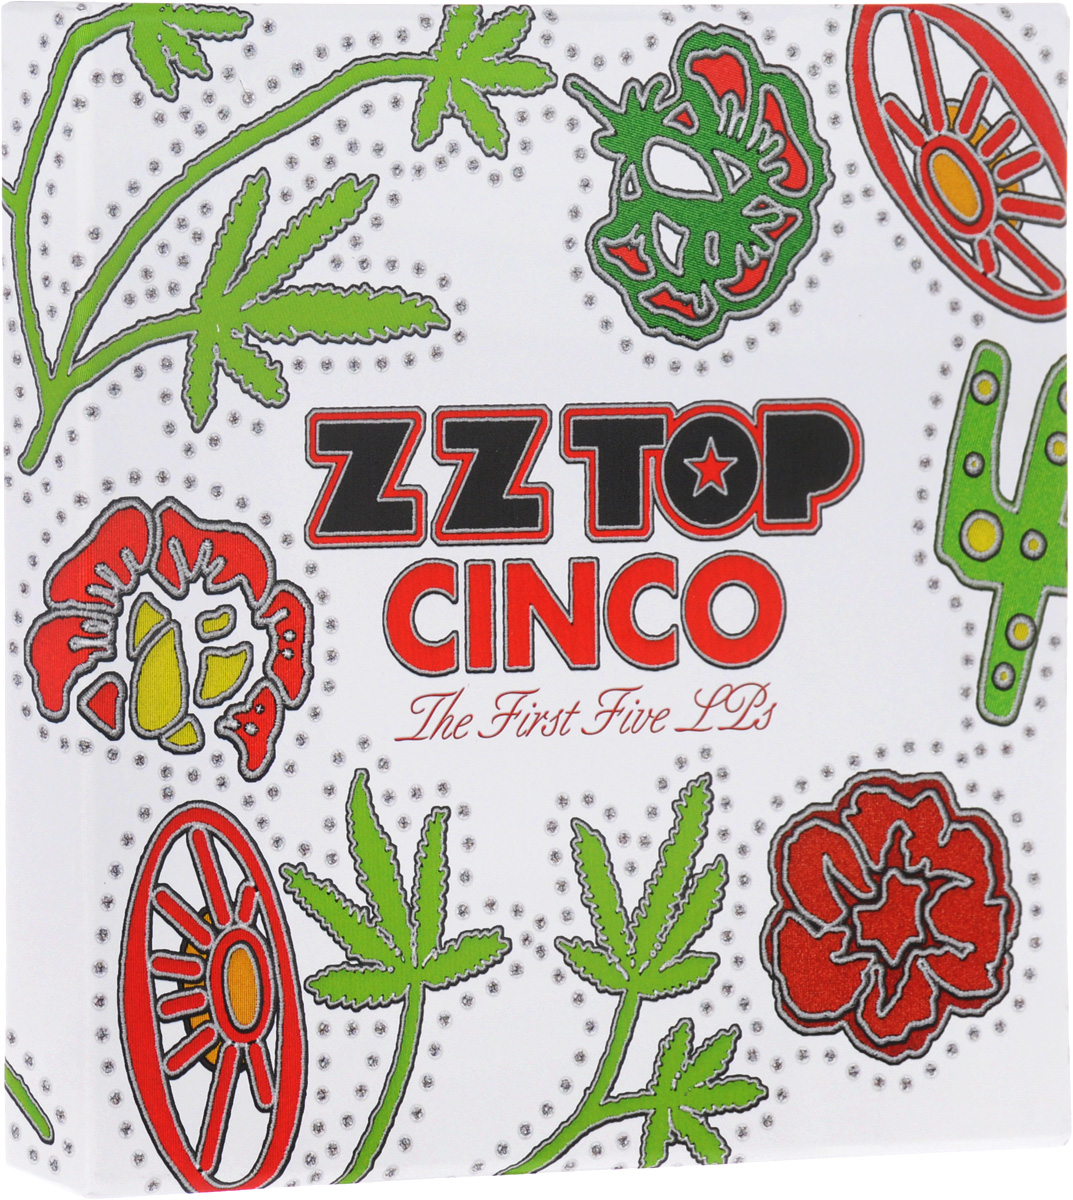 """ZZ Top"" ZZ Top. Cinco. The First Five LPs (5 LP)"